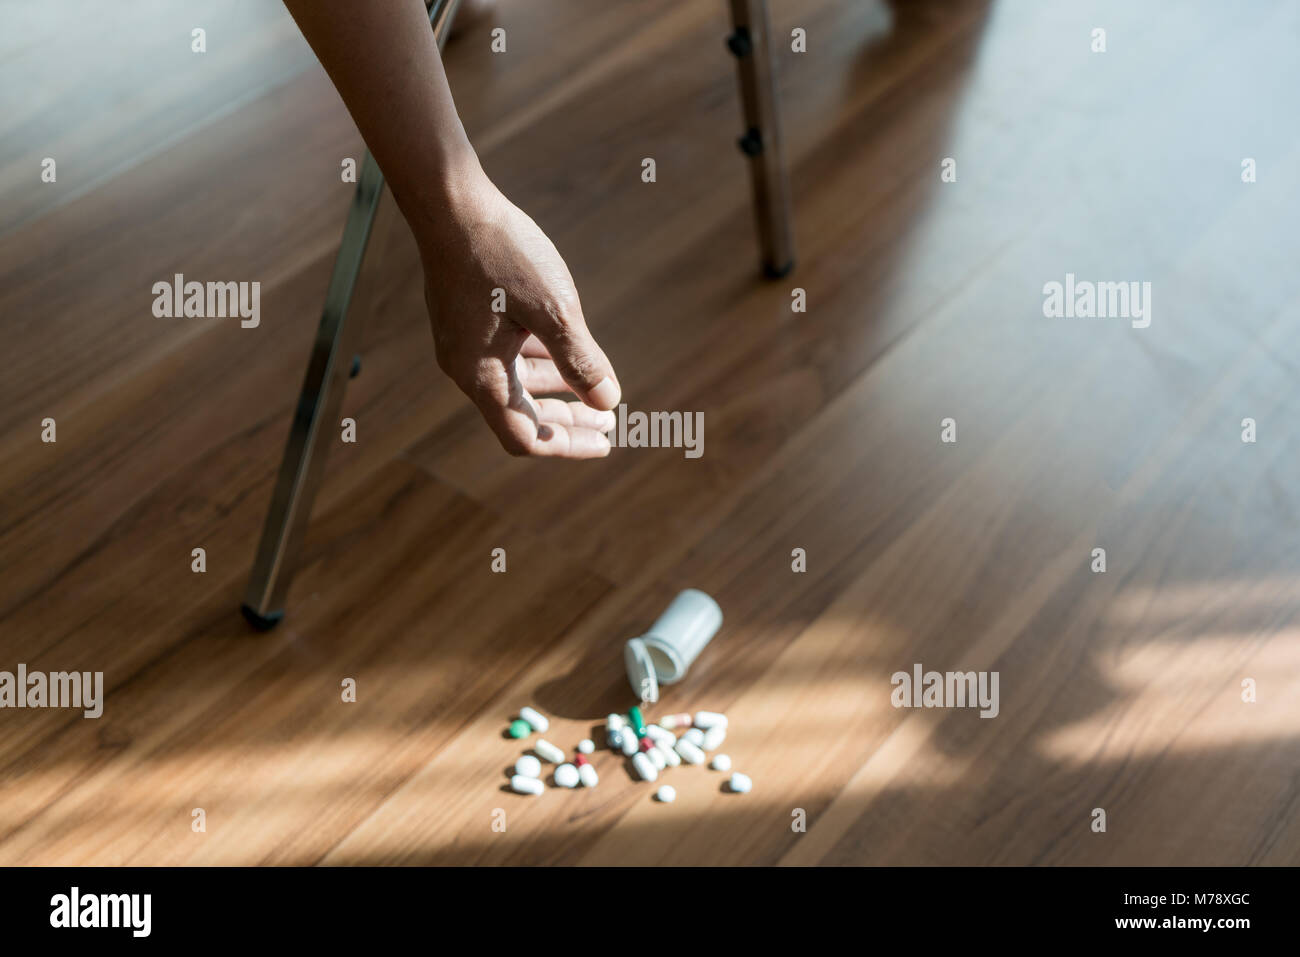 The man committing suicide by overdosing on medication. Close up of overdose pills and addict. - Stock Image